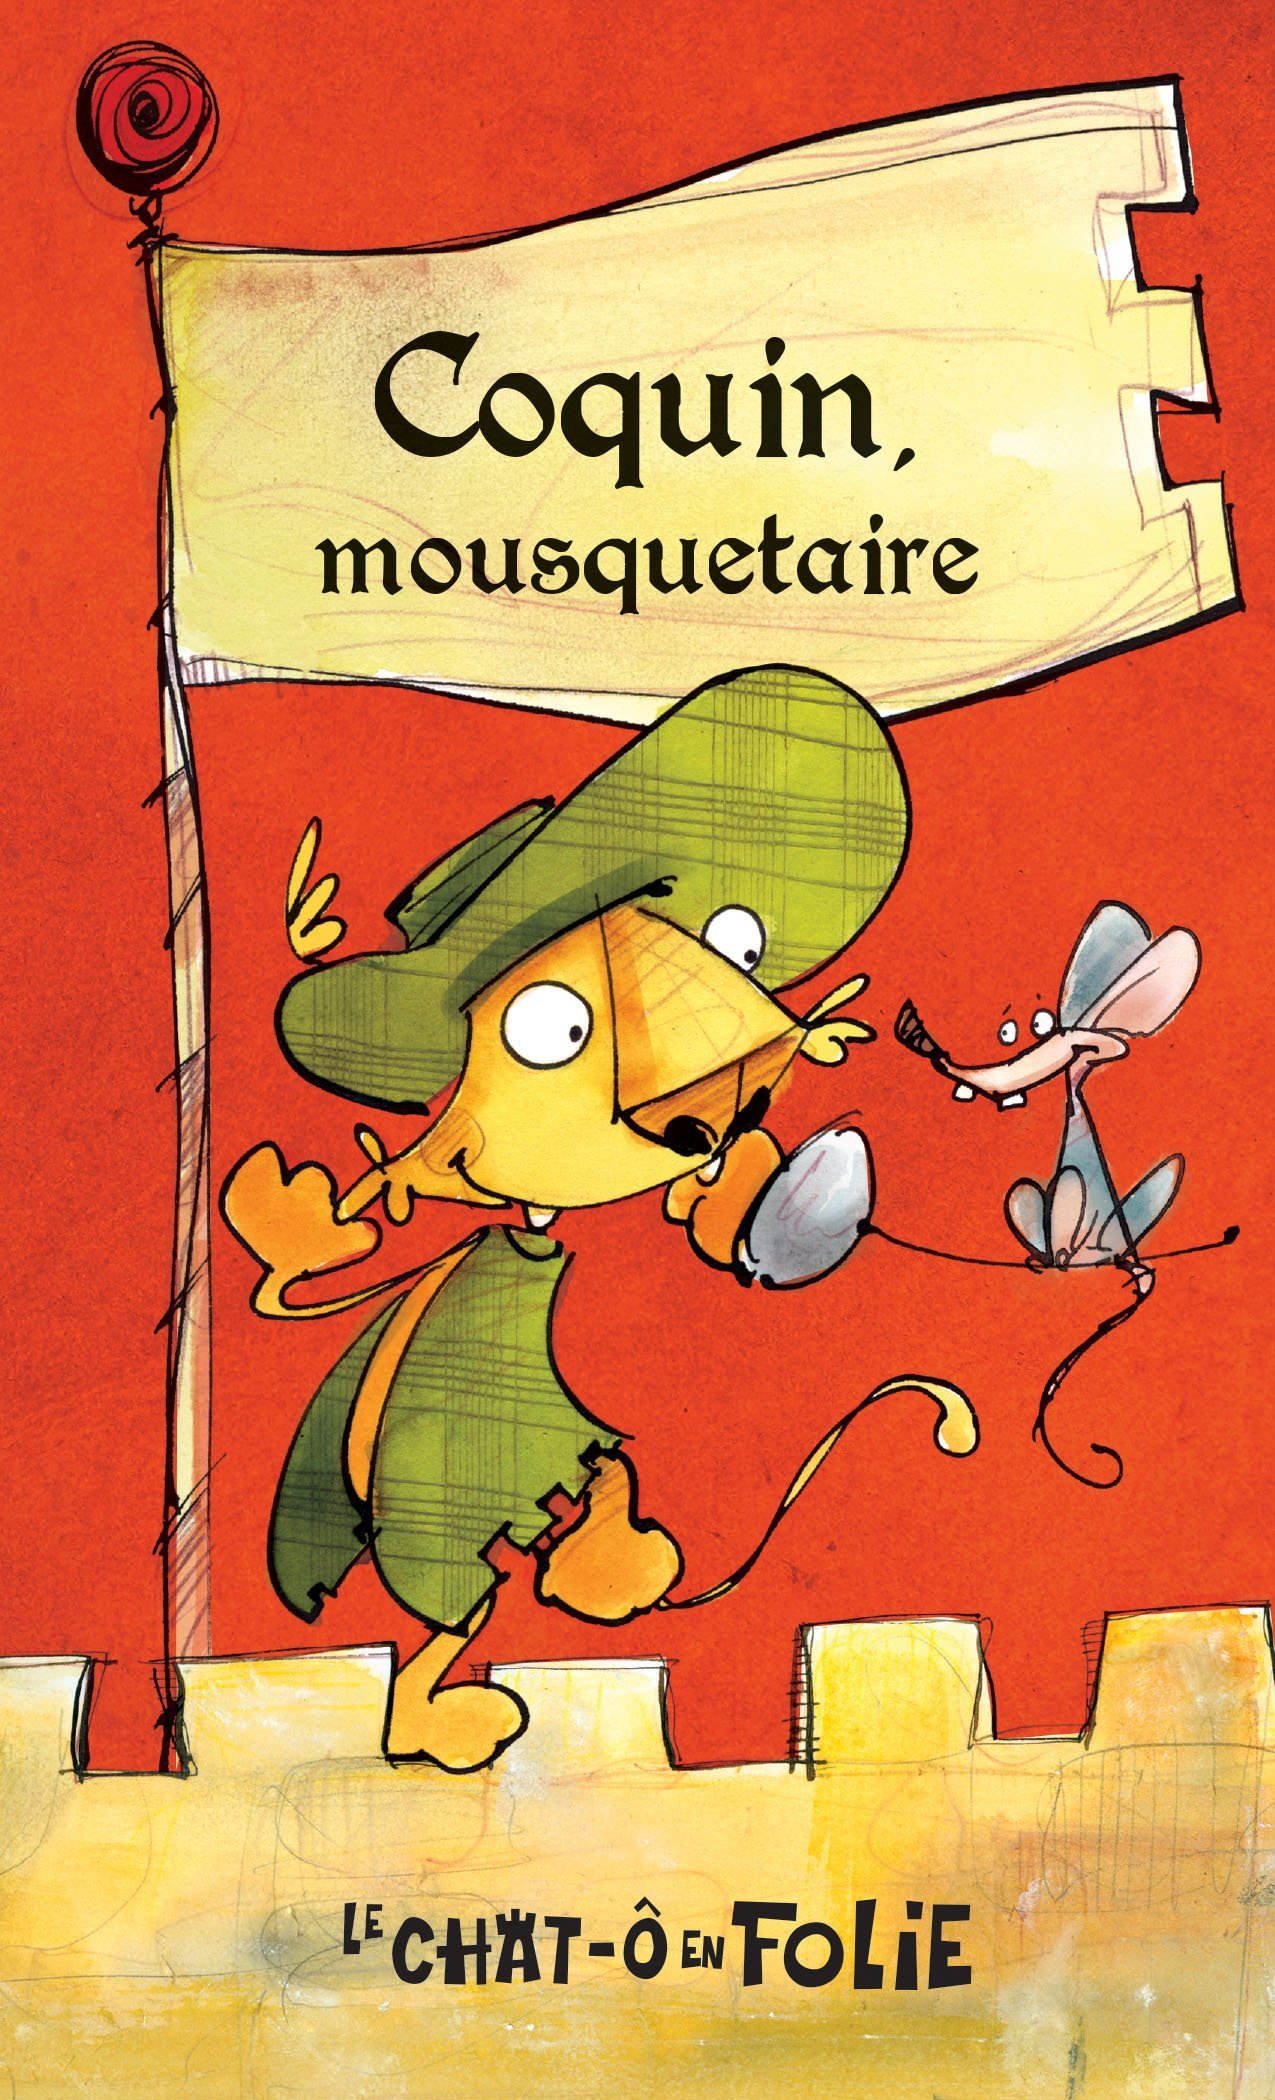 Coquin, mousquetaire